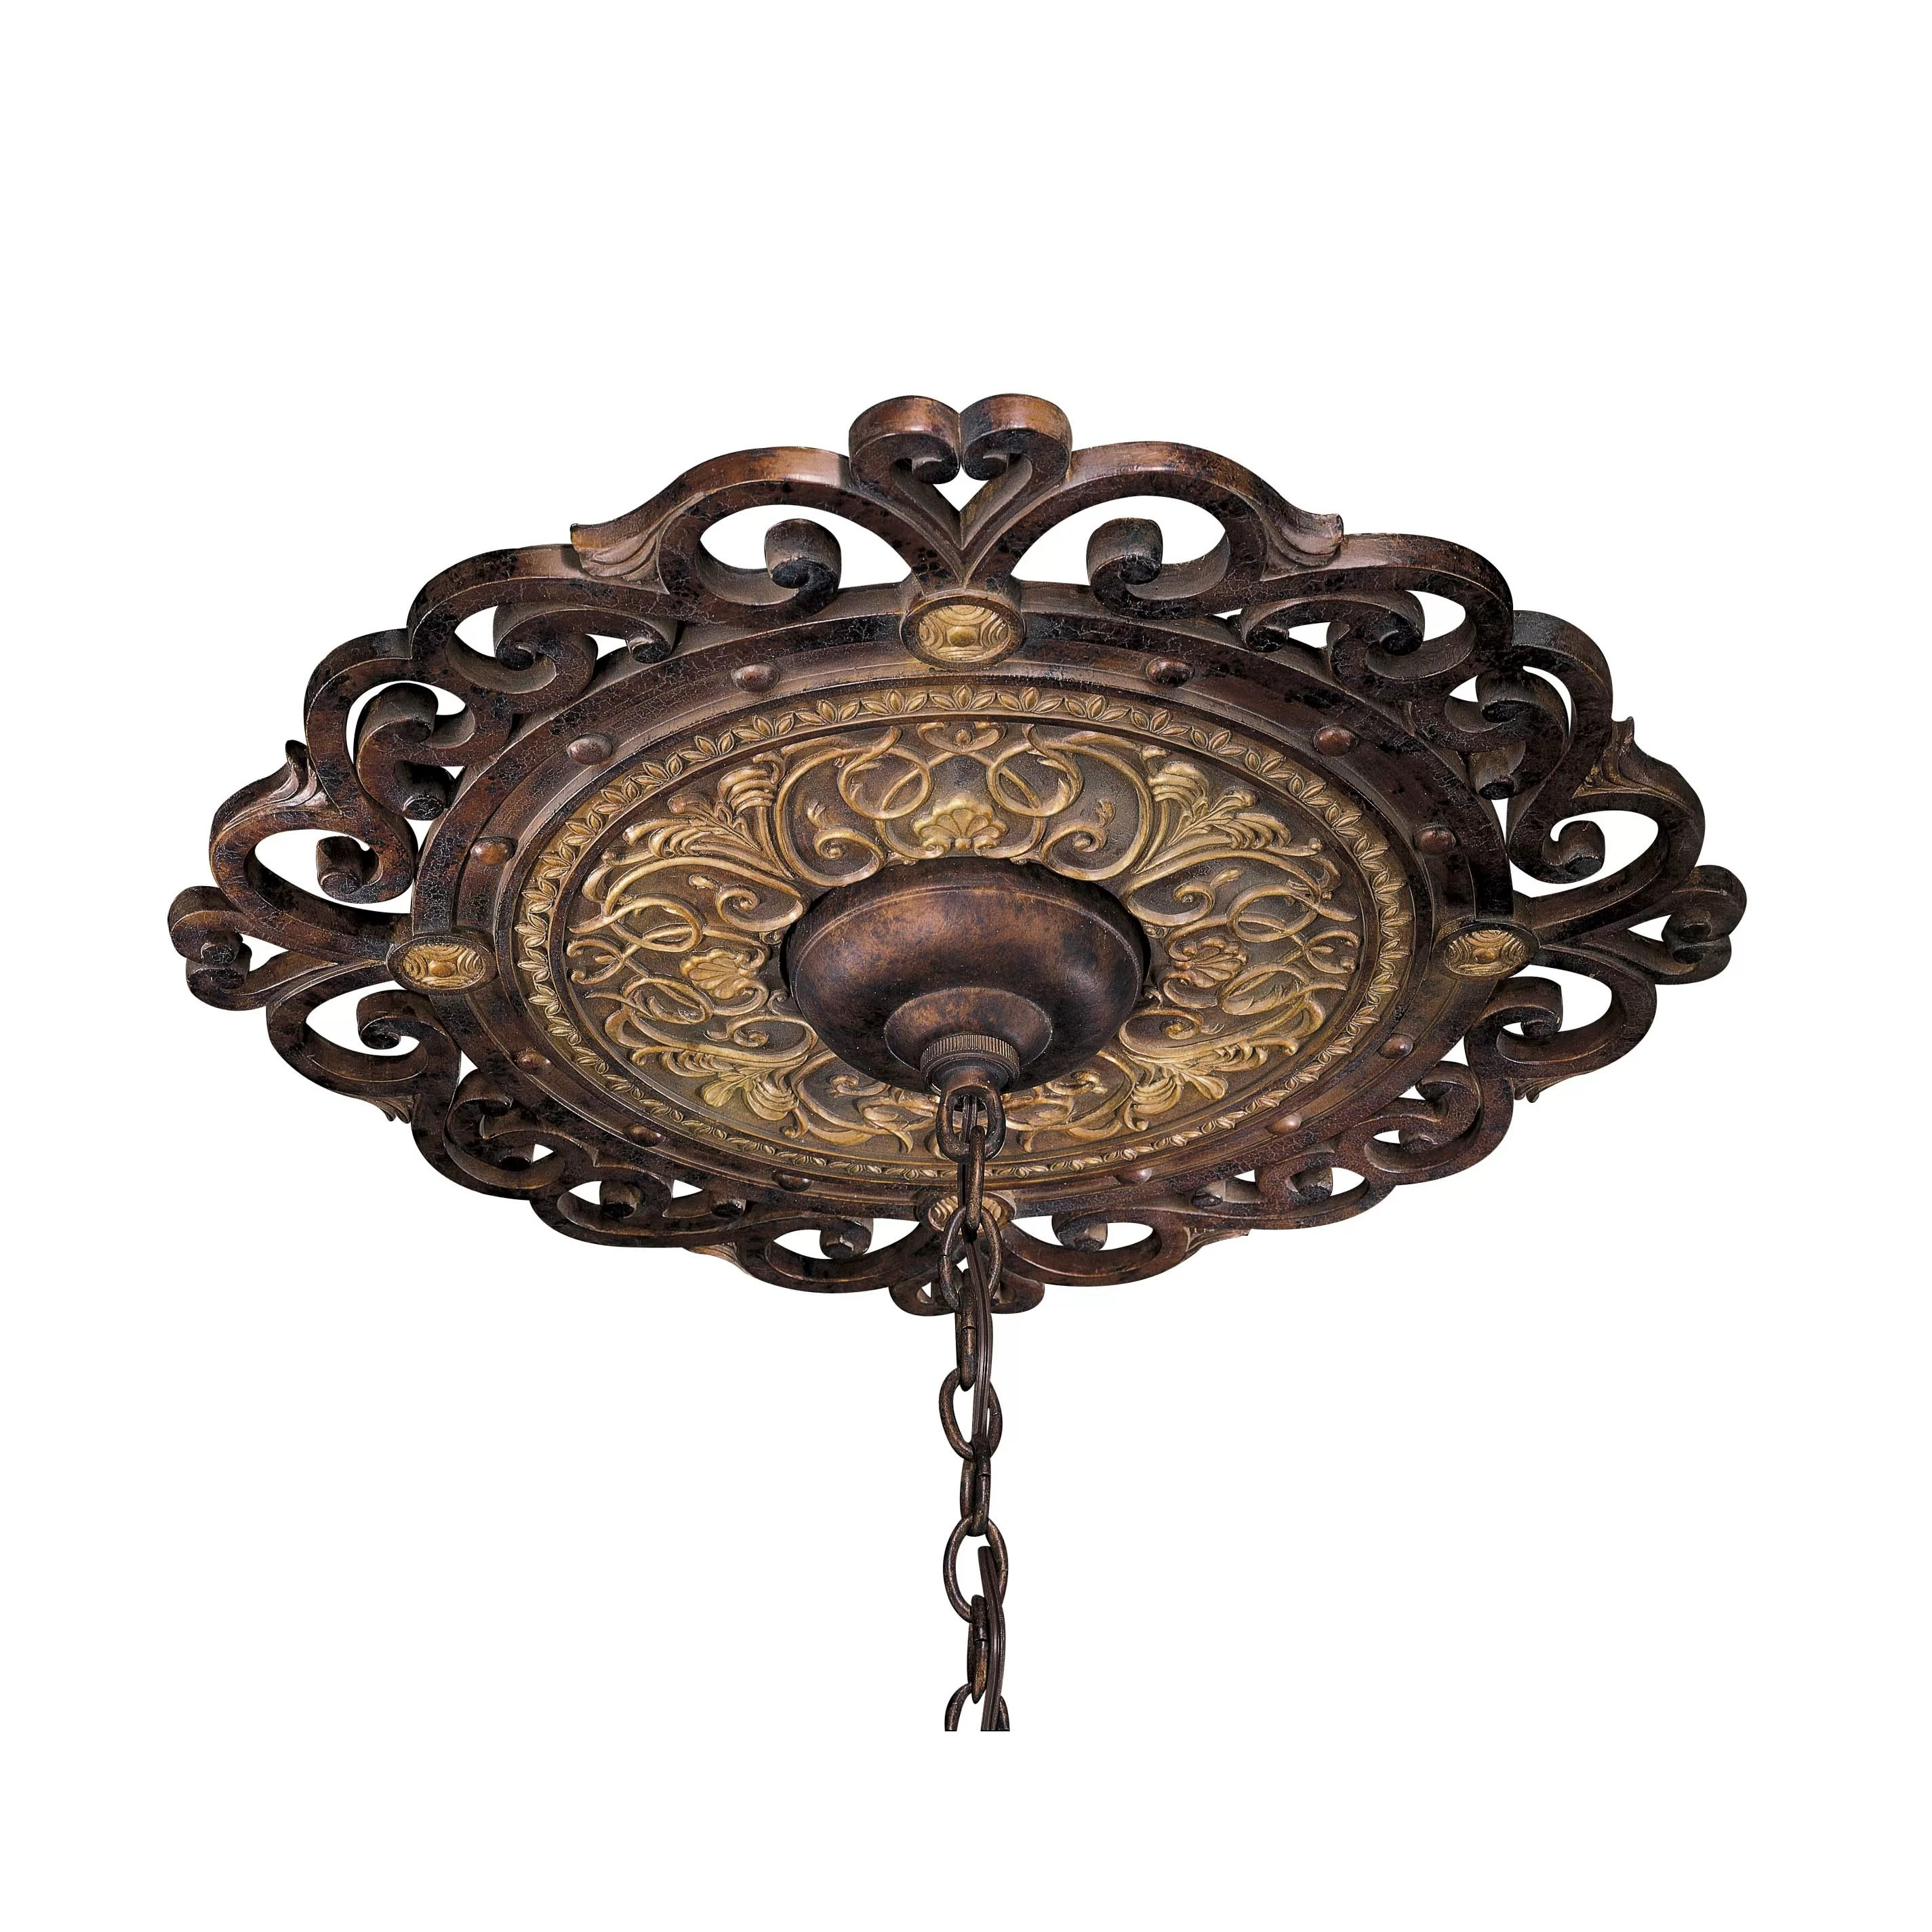 Metropolitan by Minka Zaragoza Ceiling Medallion in Golden